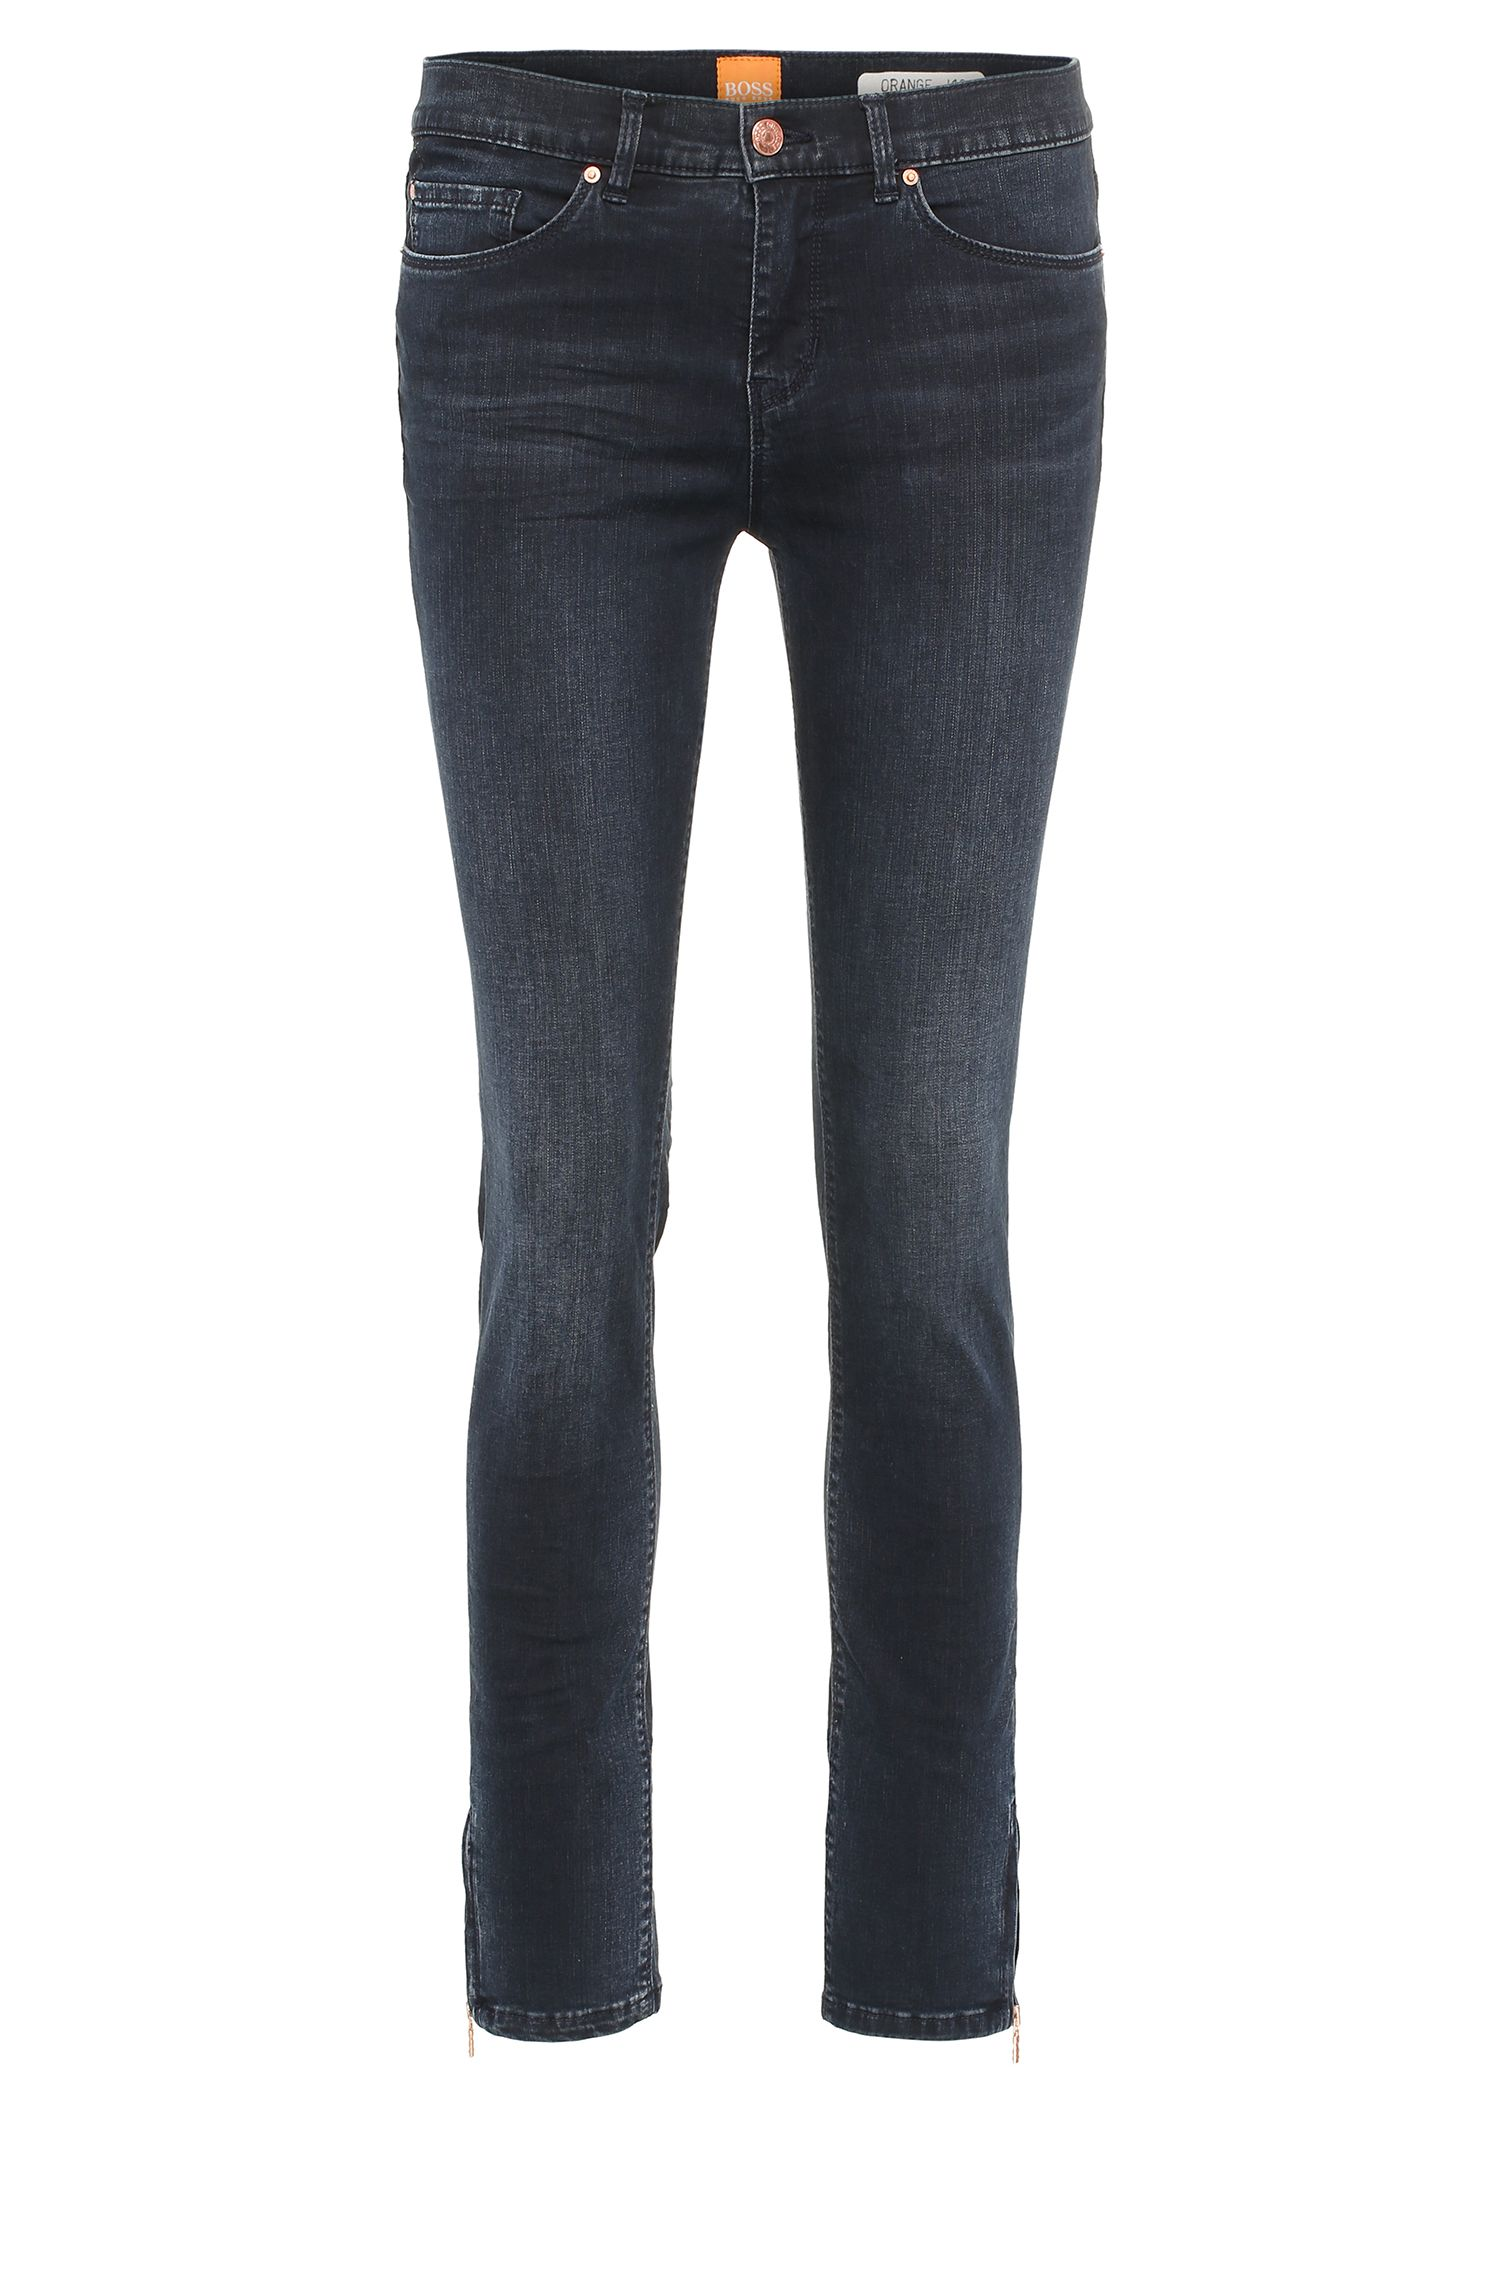 Jeans Skinny Fit en coton extensible mélangé : « Orange J10 Irvine »